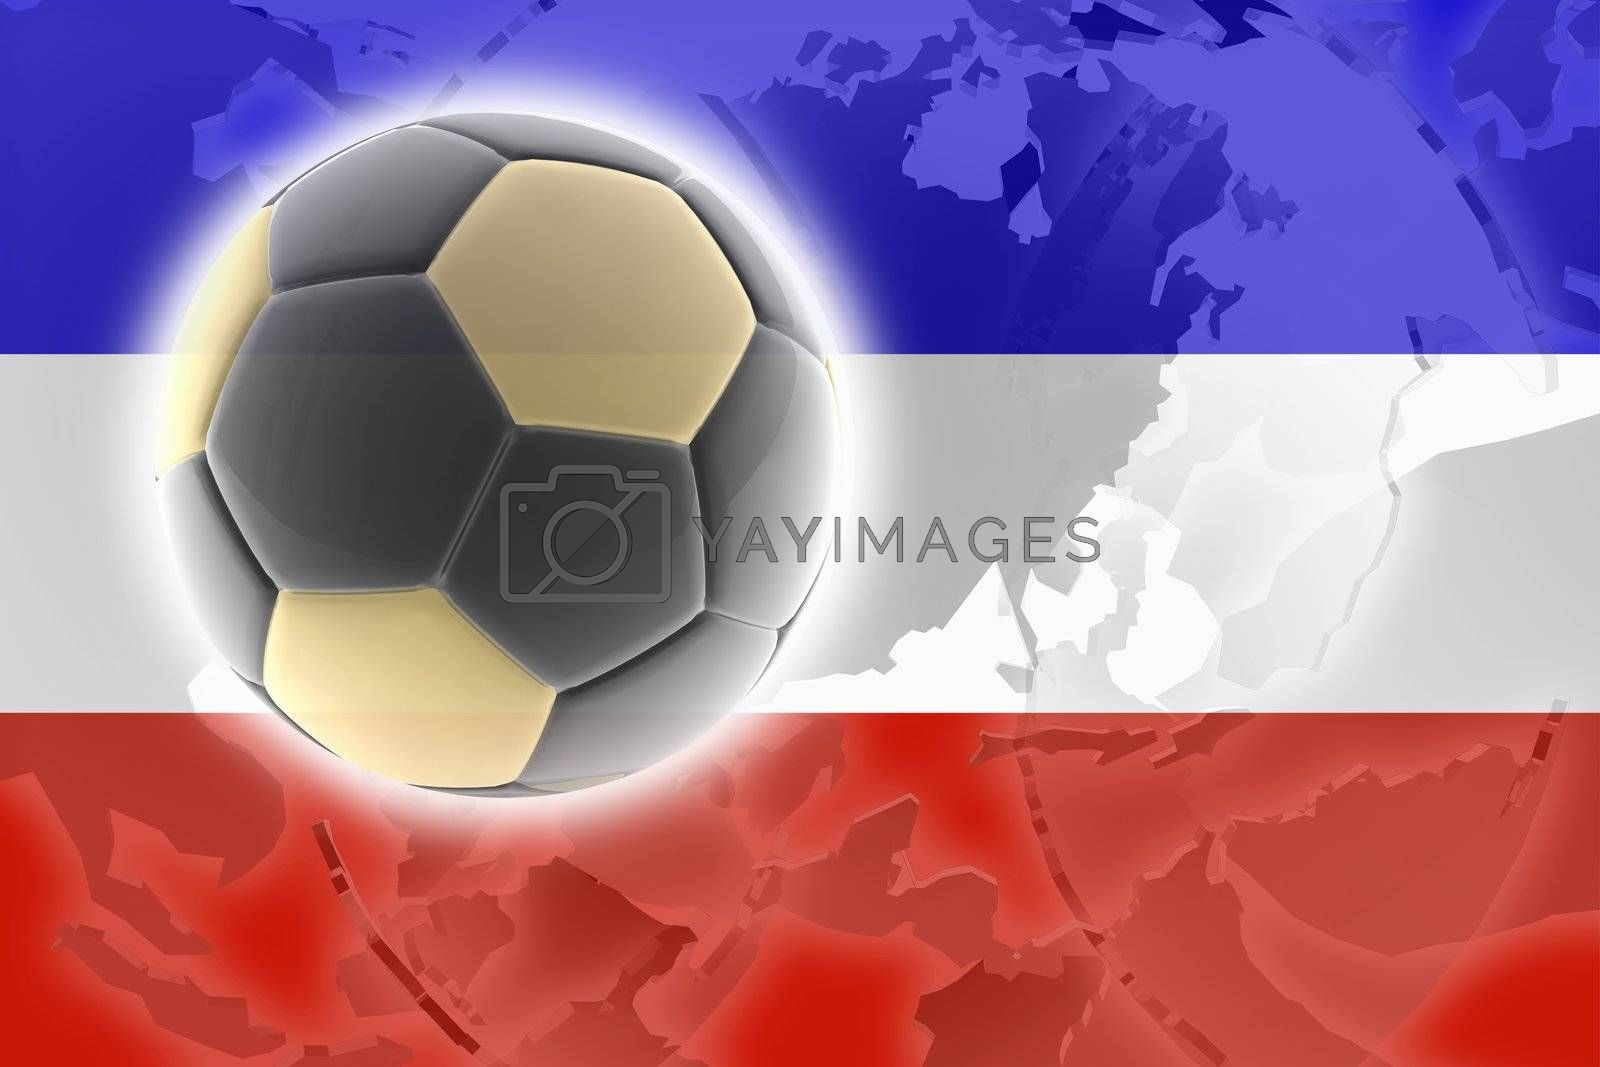 Flag of Serbia and Montenegro, national country symbol illustration sports soccer football